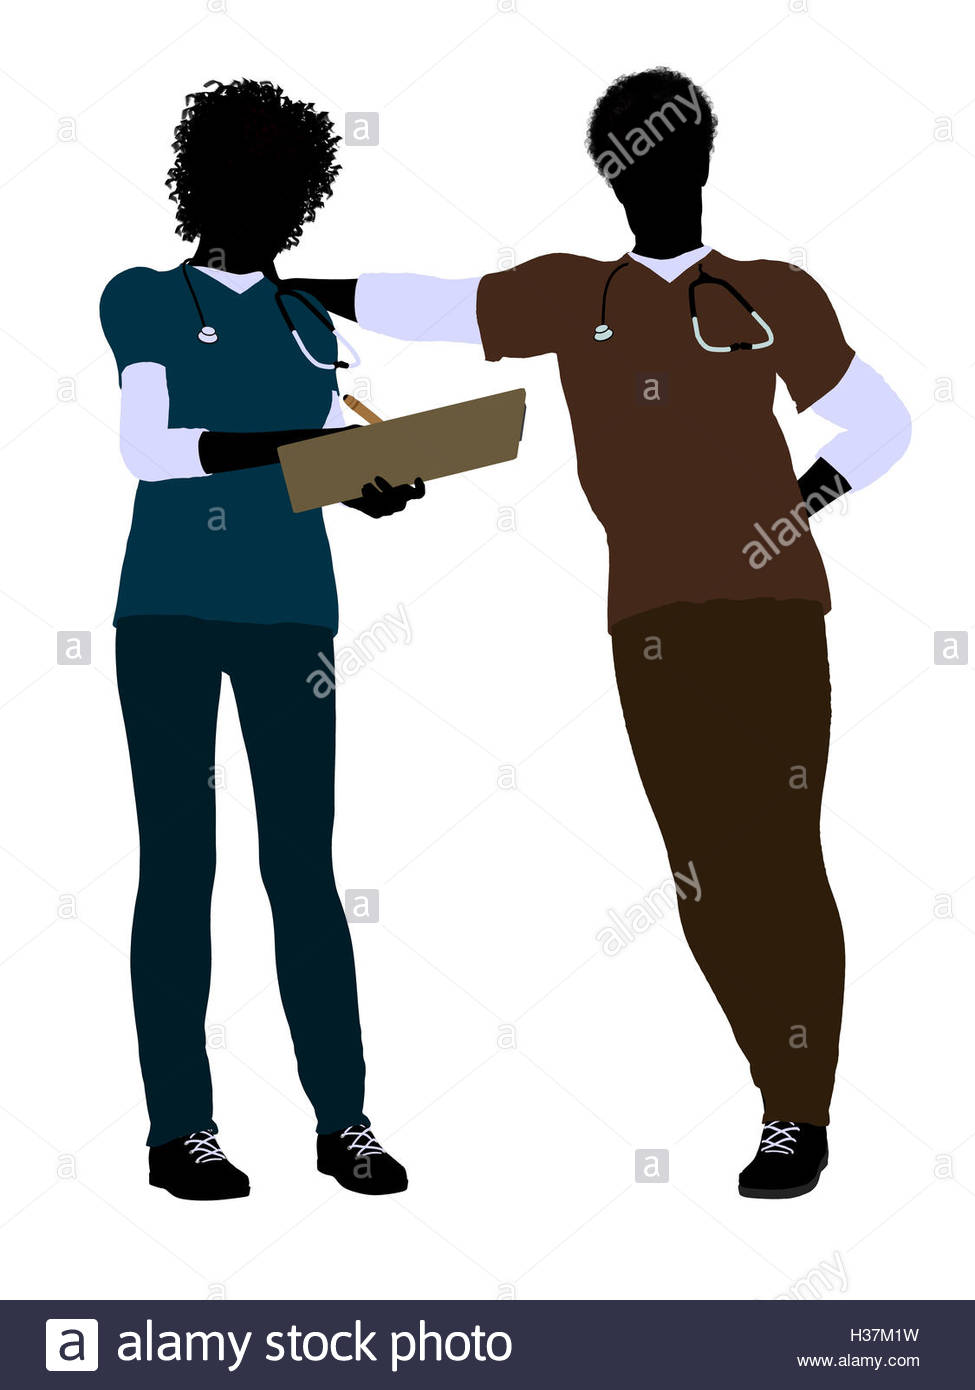 975x1390 African American Female And Male Doctor Silhouette Stock Photo